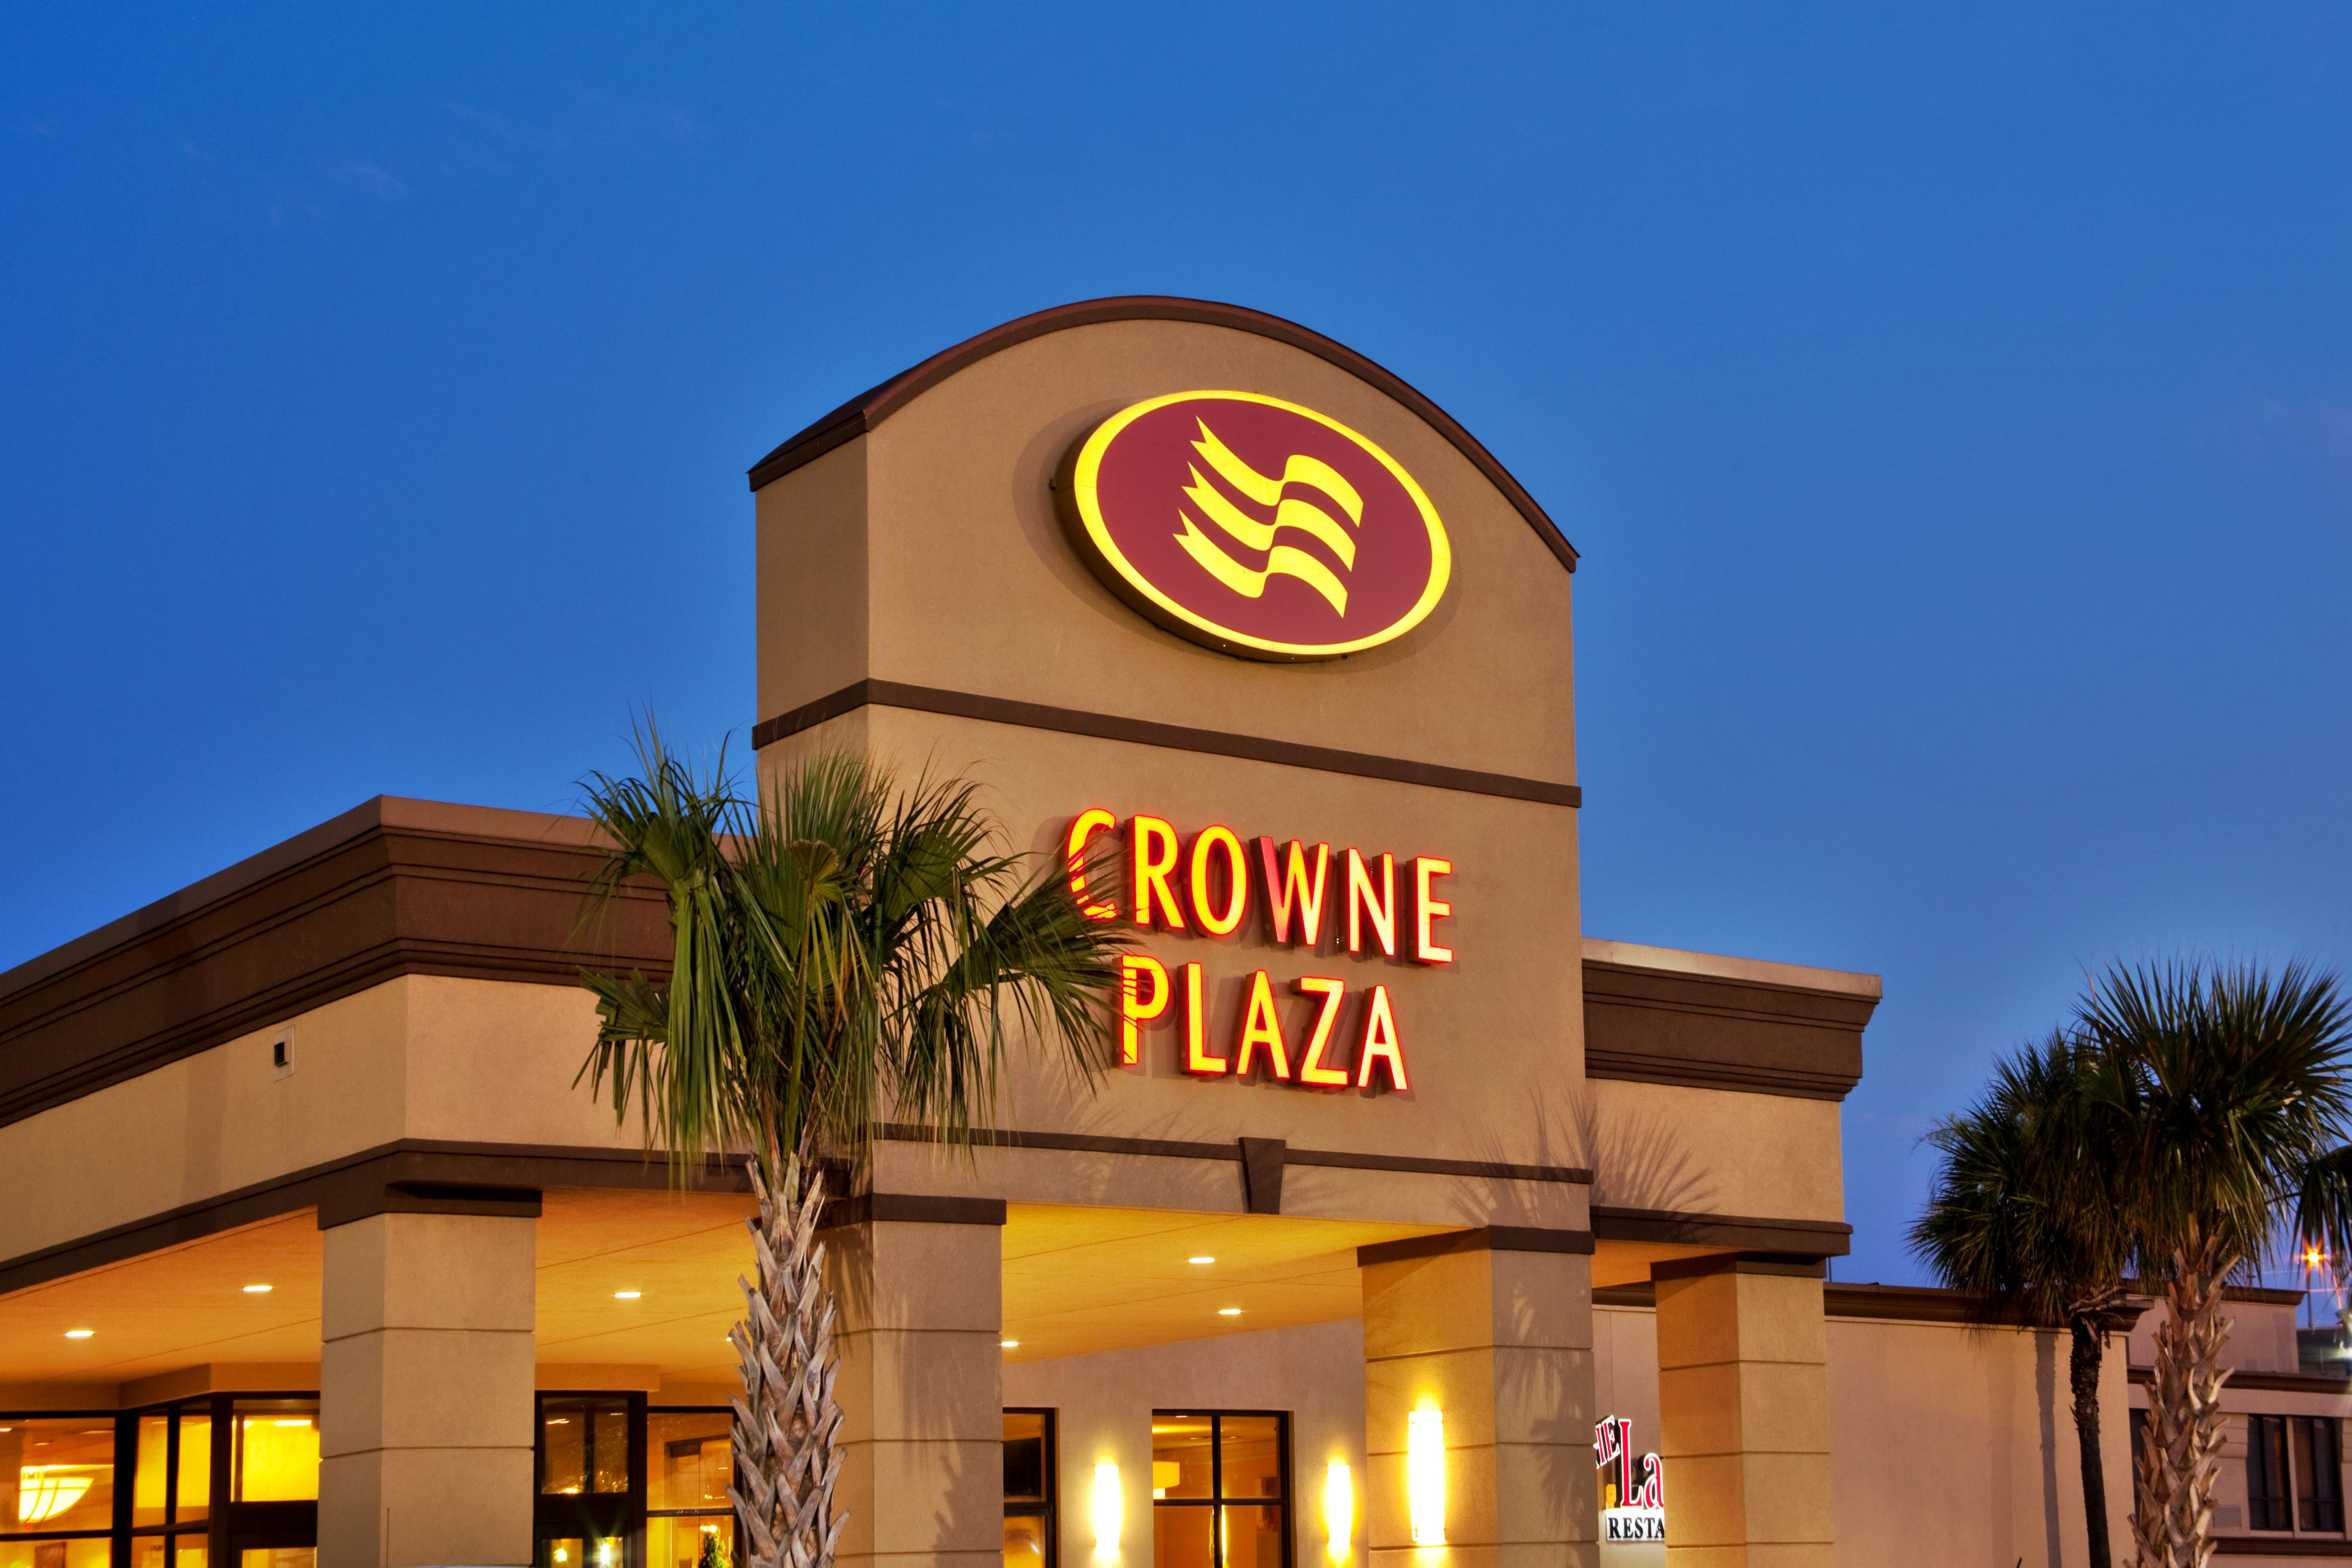 Crowne plaza hotel coupons